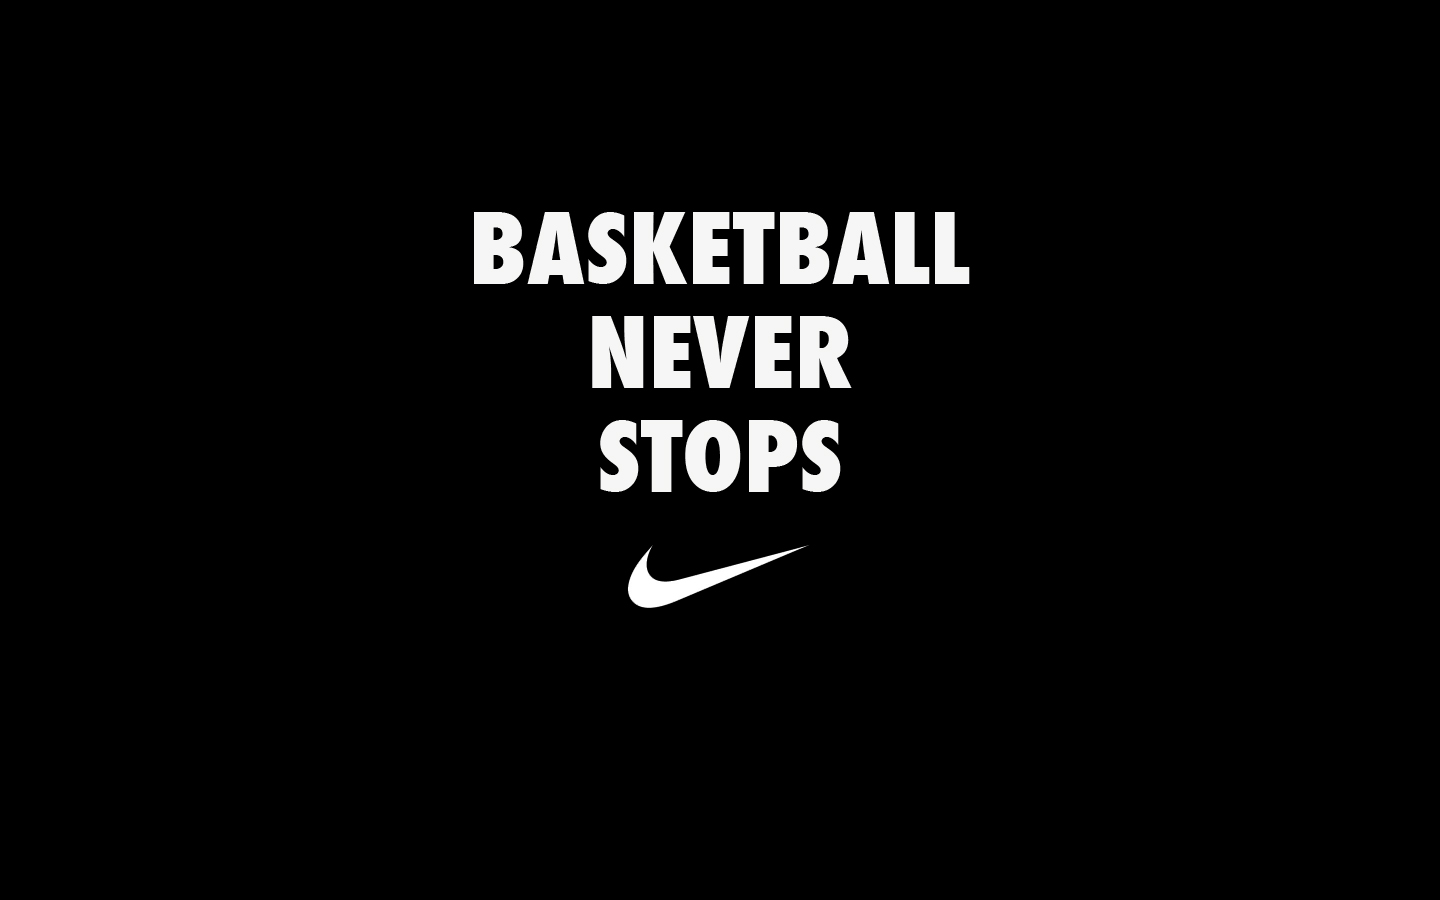 nike quotes about basketball - photo #3